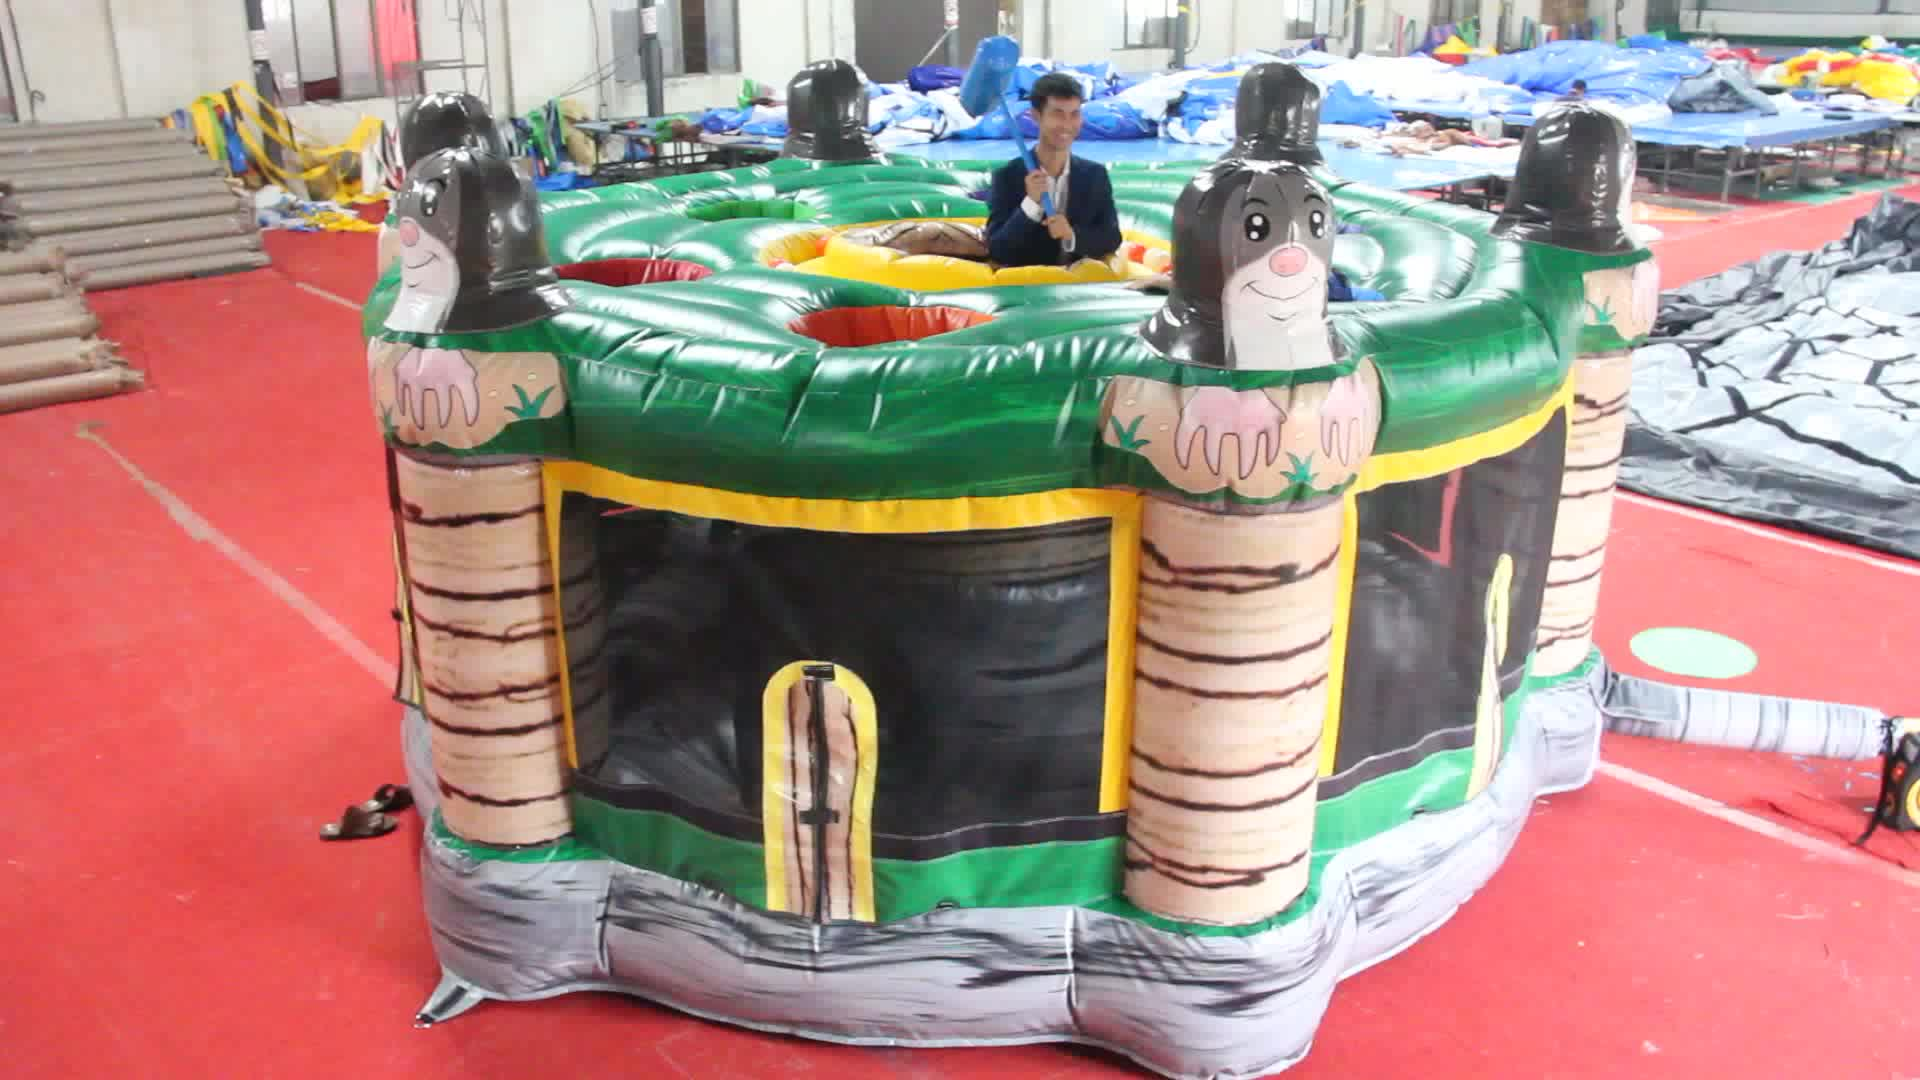 crazy kids N adult game inflatable human whack a mole inflatable hamster interactive adult hunting game